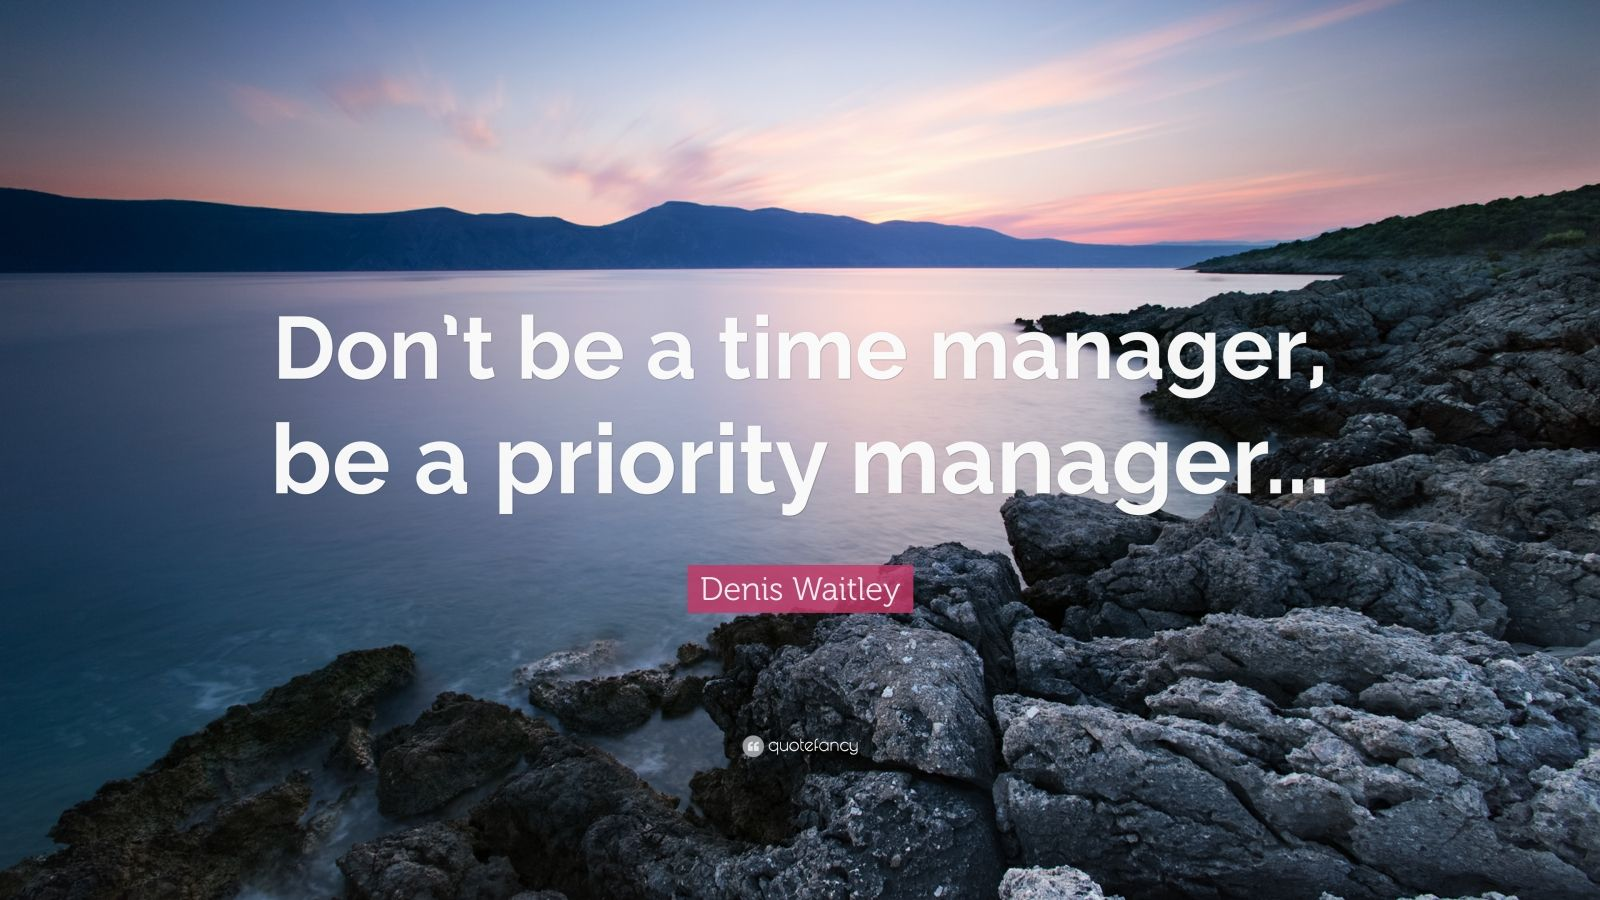 """Denis Waitley Quote: """"Don't be a time manager, be a priority manager..."""""""